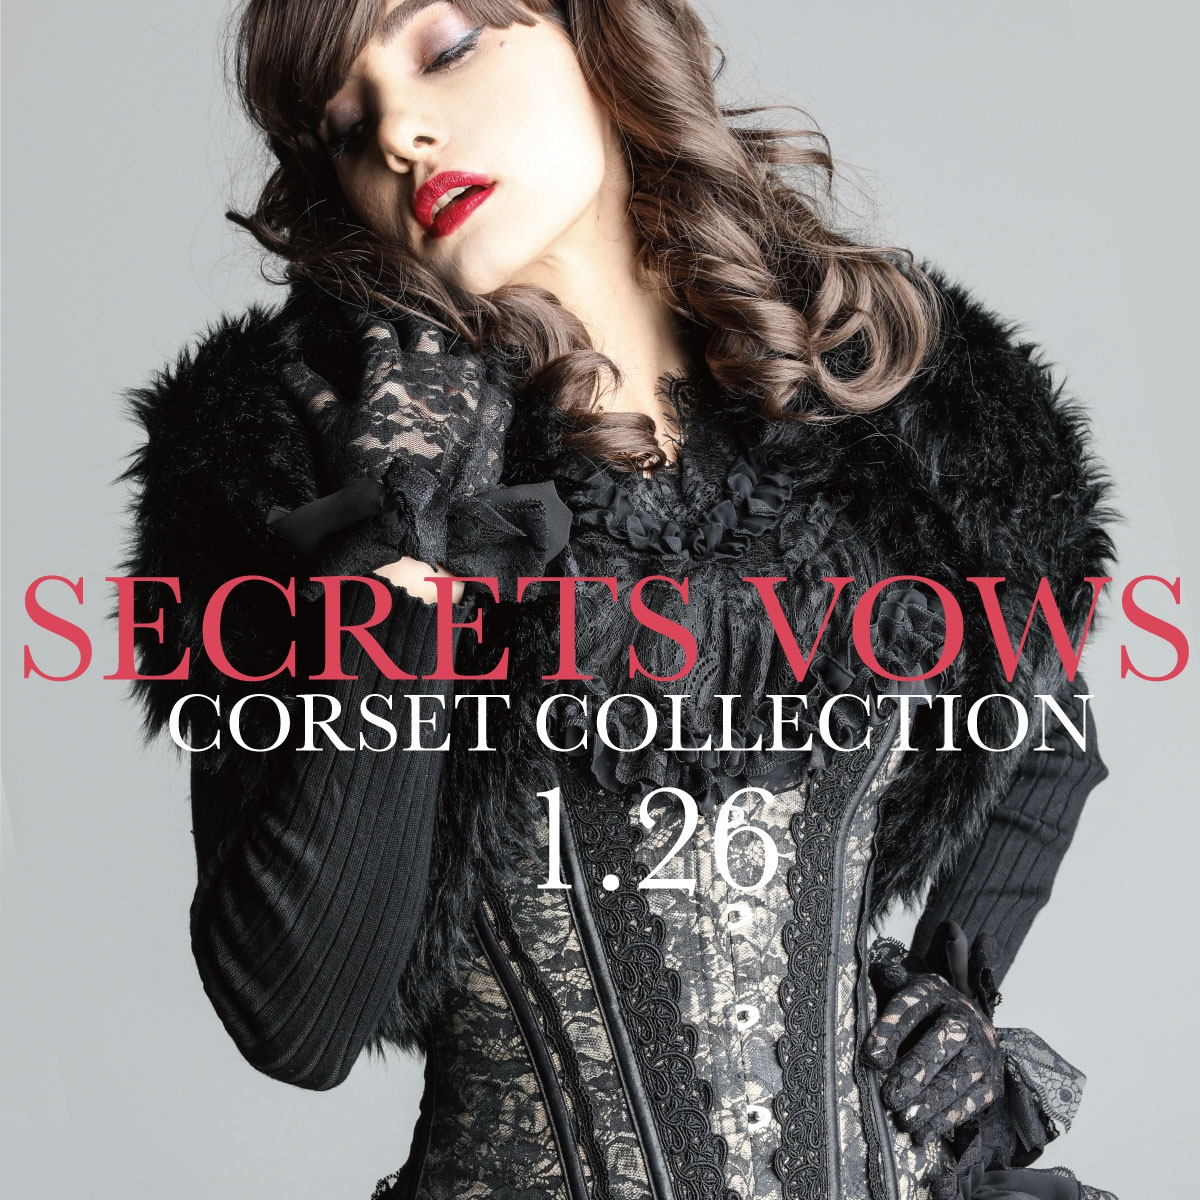 0126 SECRETS VOWS / Corset Collection